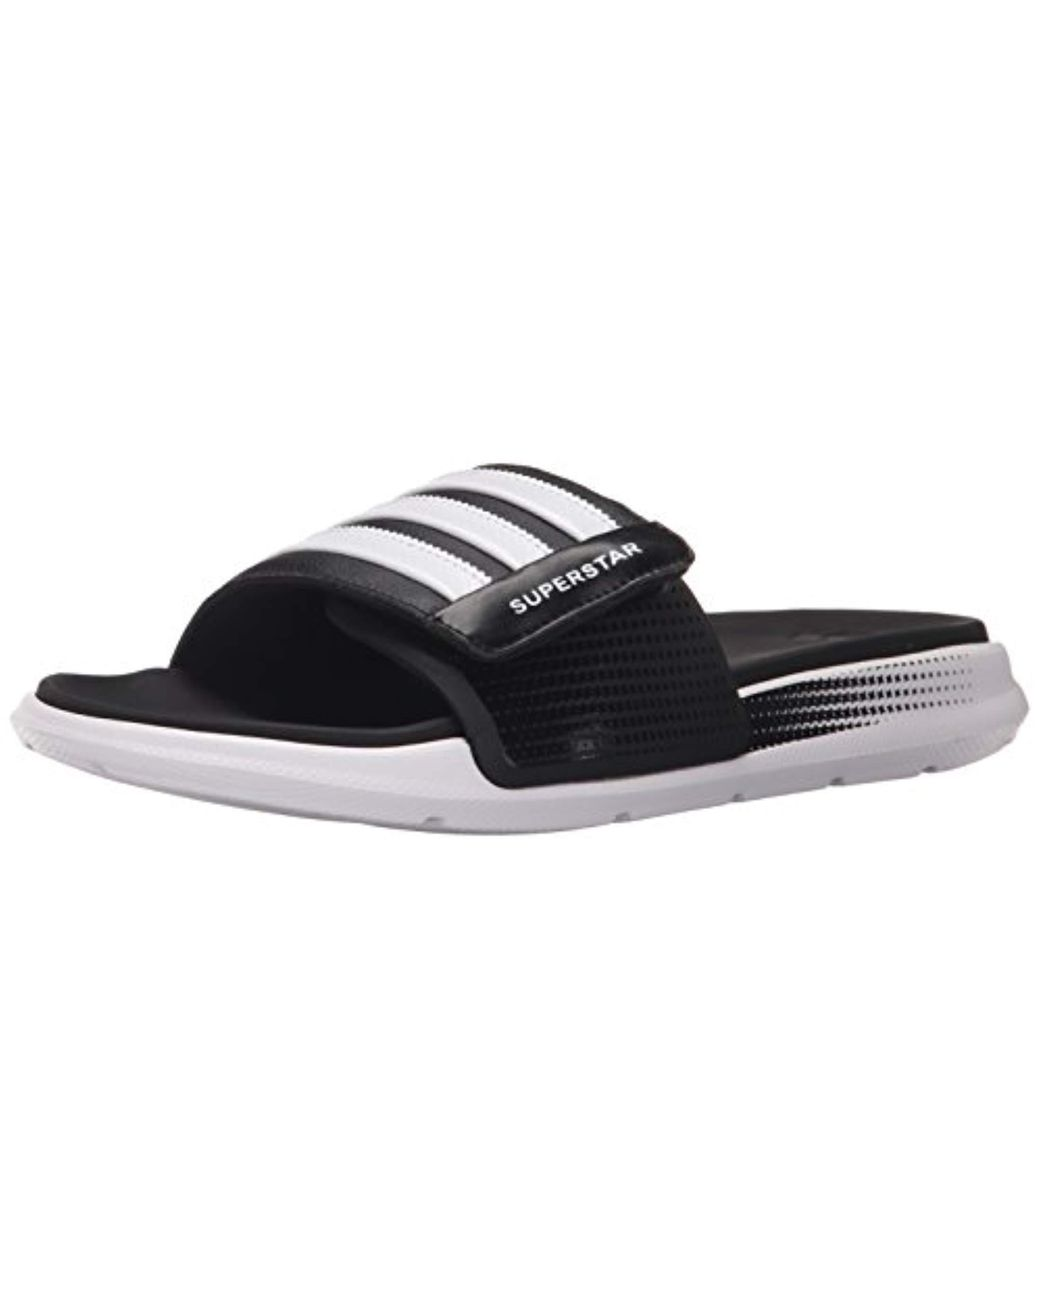 0fcba85d6ba9 Lyst - adidas Performance Superstar 4g M Sandal in Black for Men